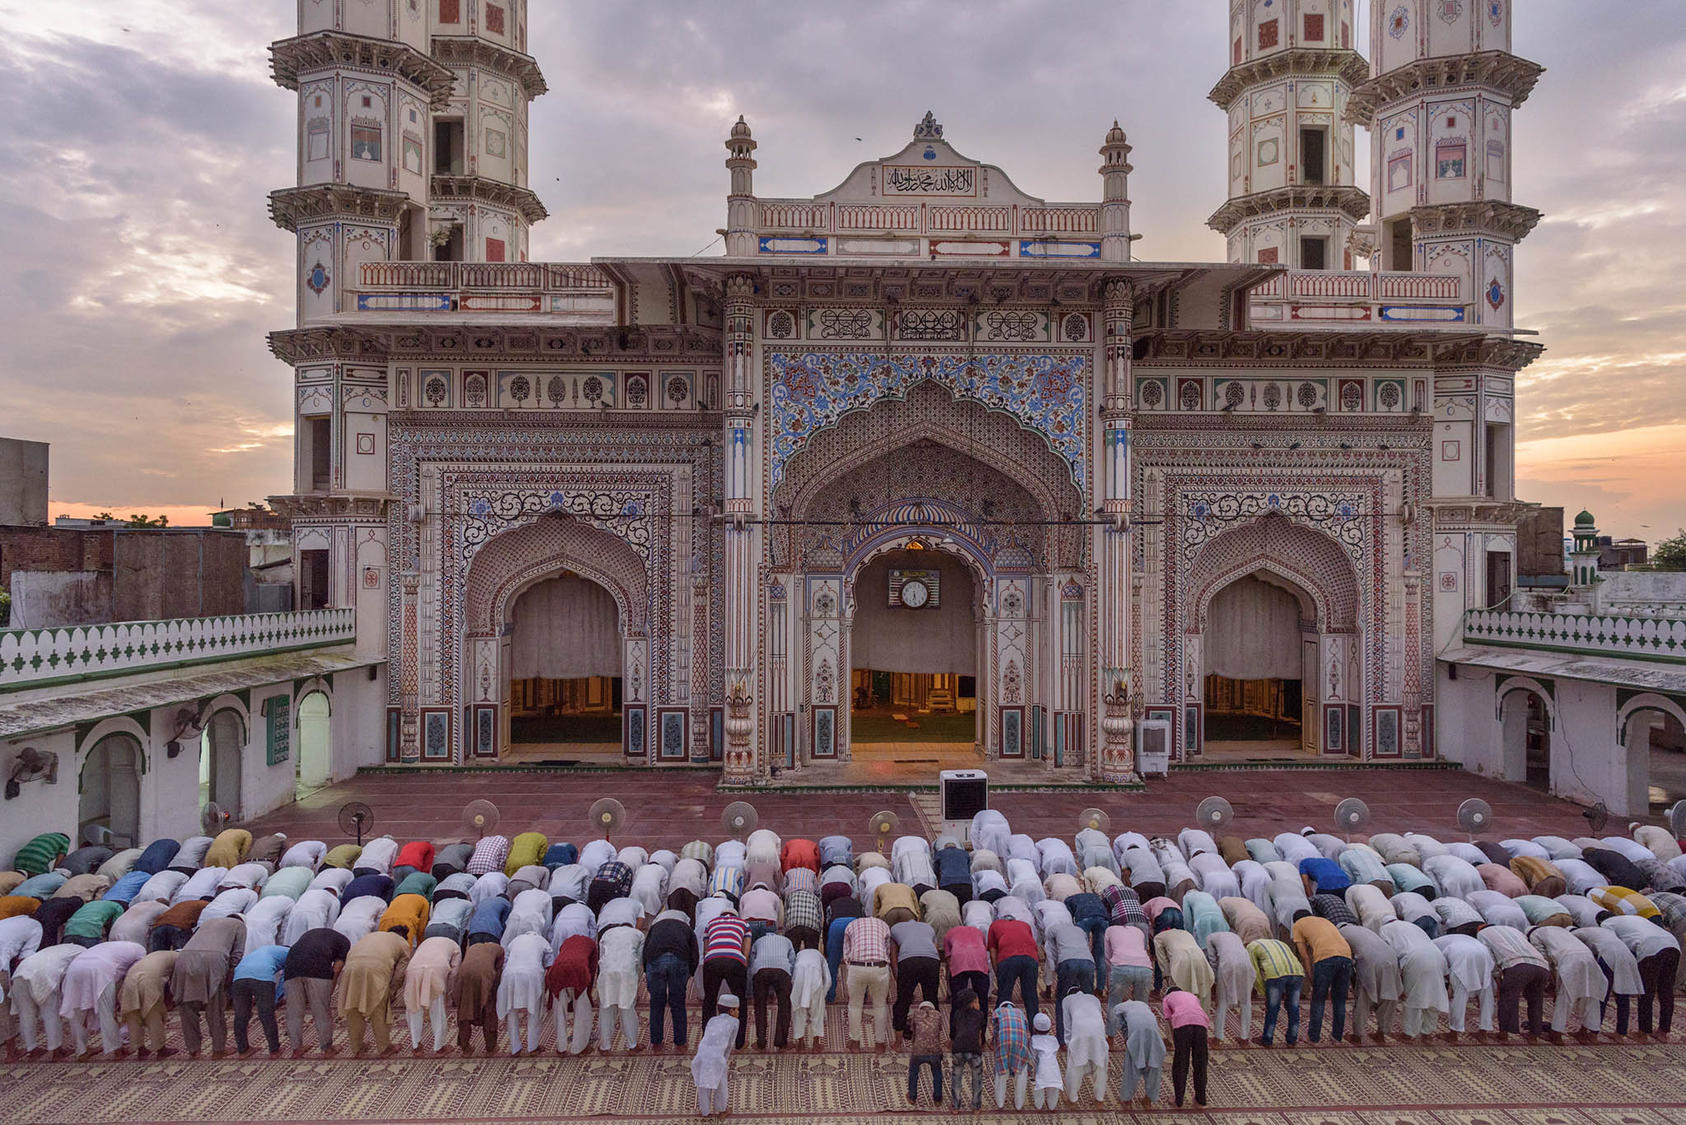 Muslims pray at a mosque in Tonk, India, on Sept. 28, 2019. (Smita Sharma/The New York Times)